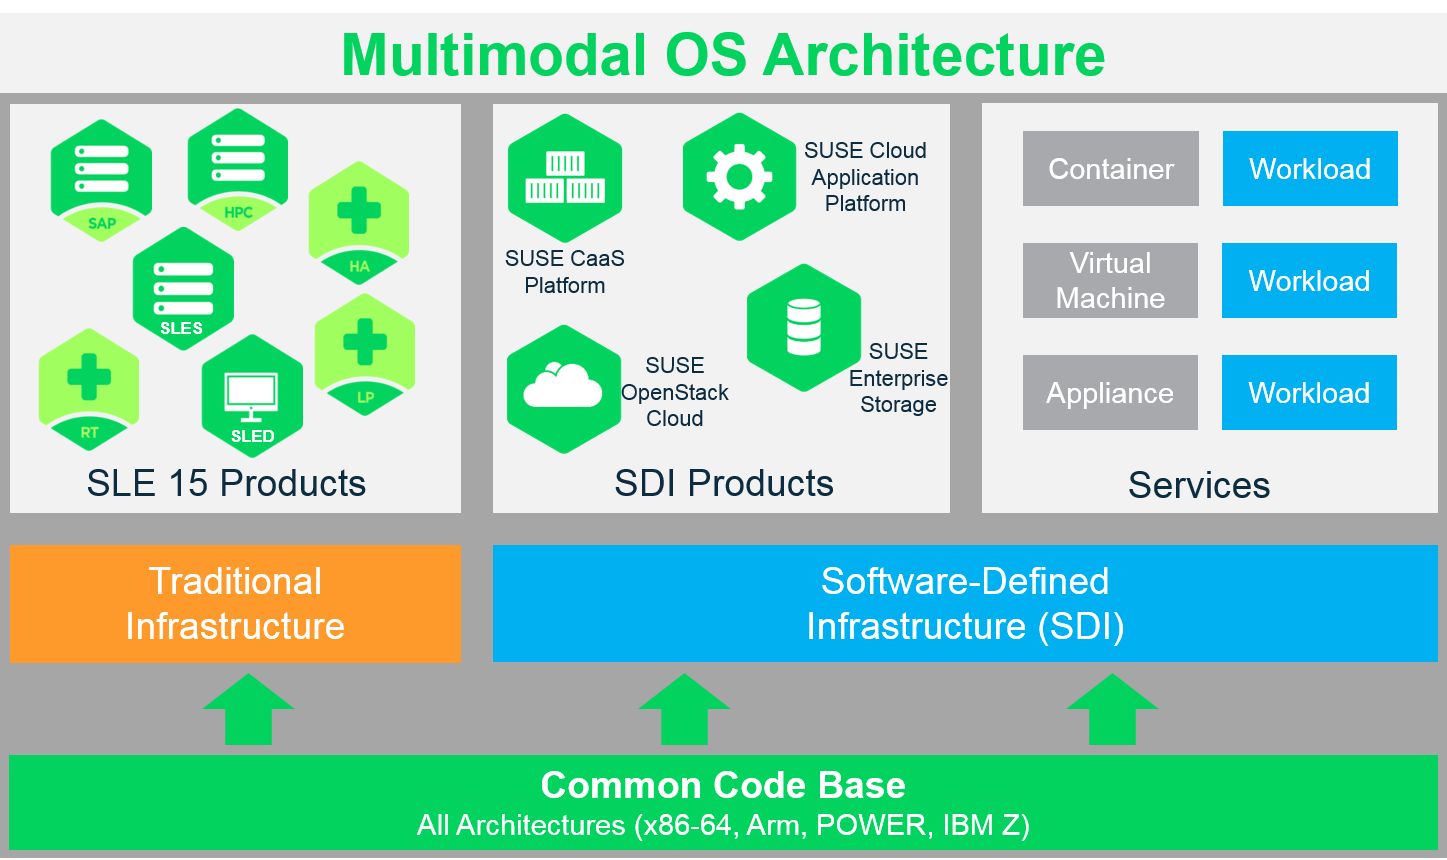 Multimodal OS Architecture